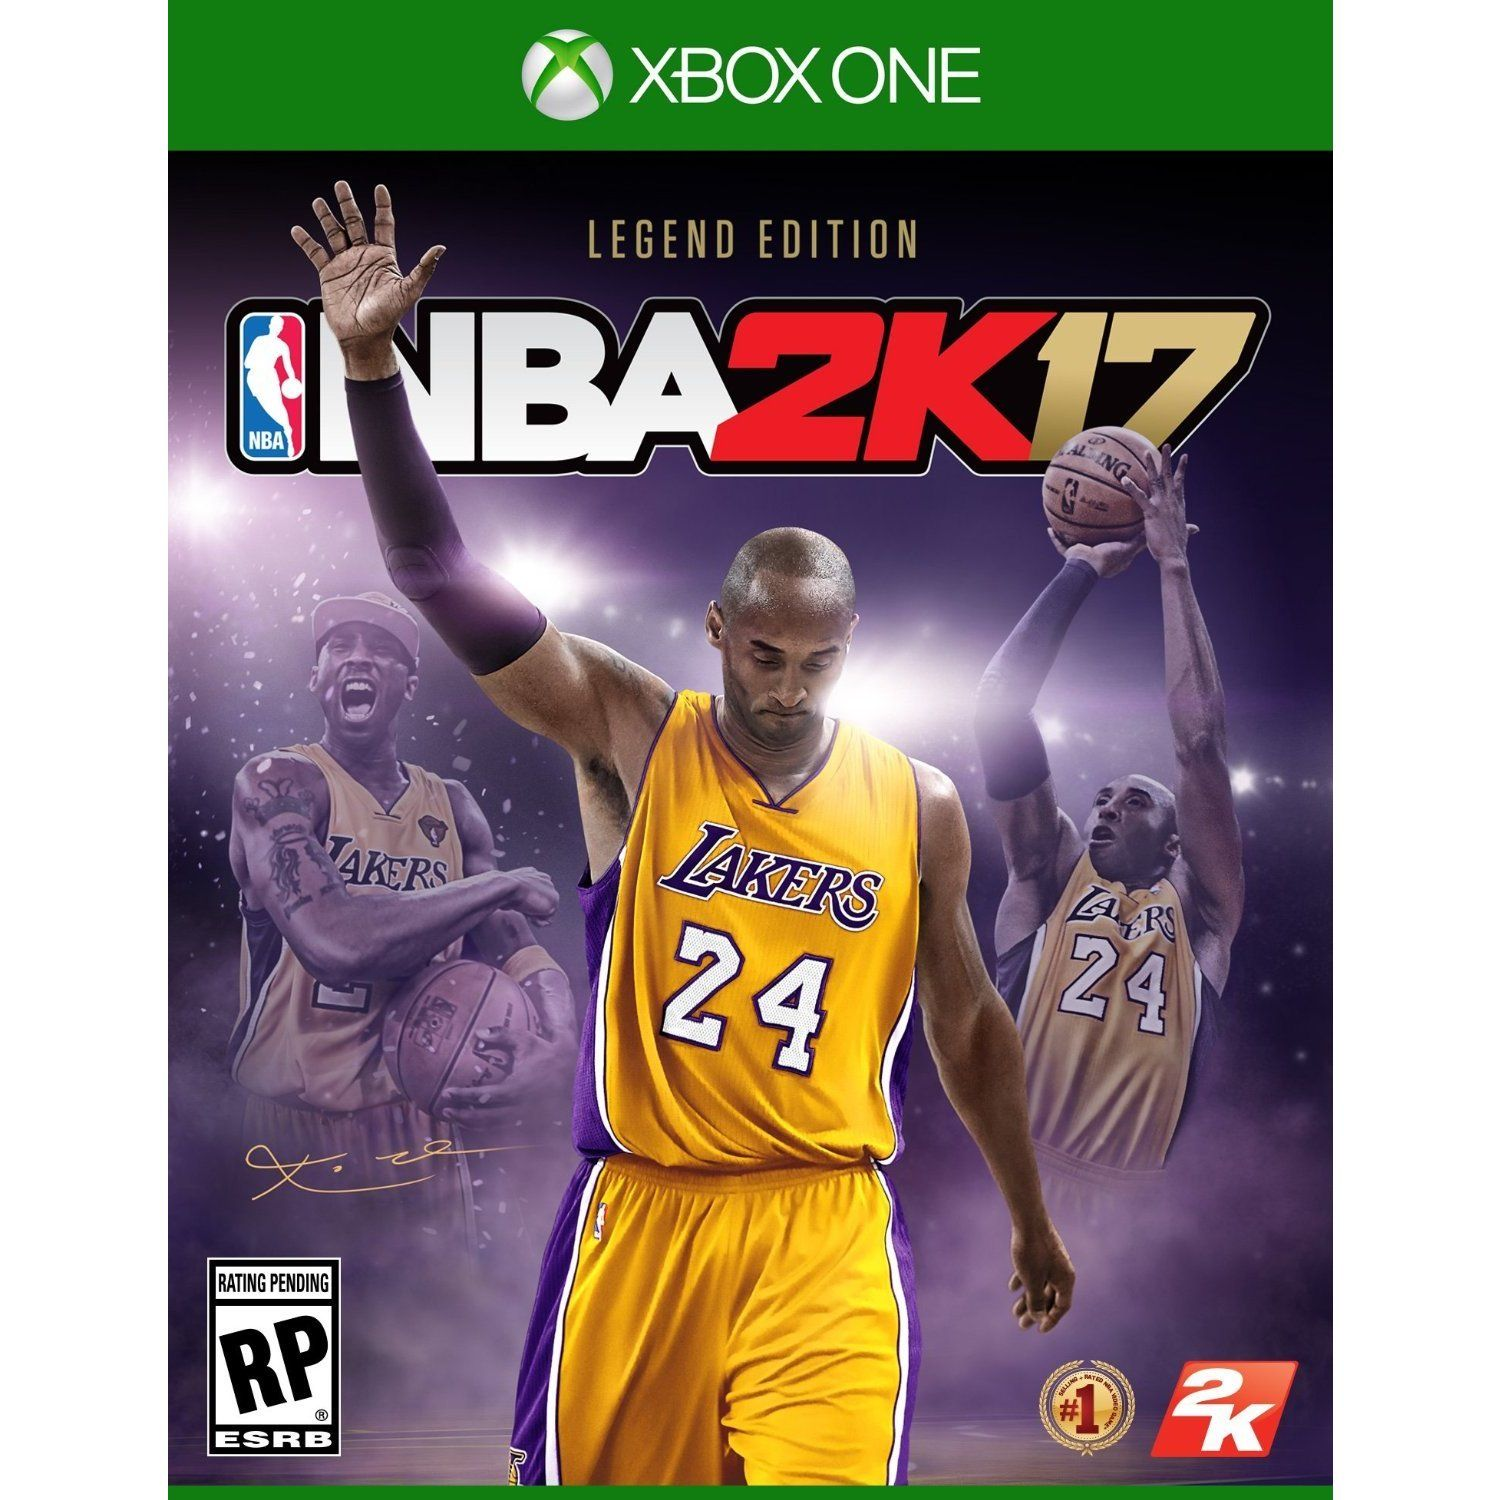 NBA 2K17 Legend Edition Xbox One Xbox one, Nba video